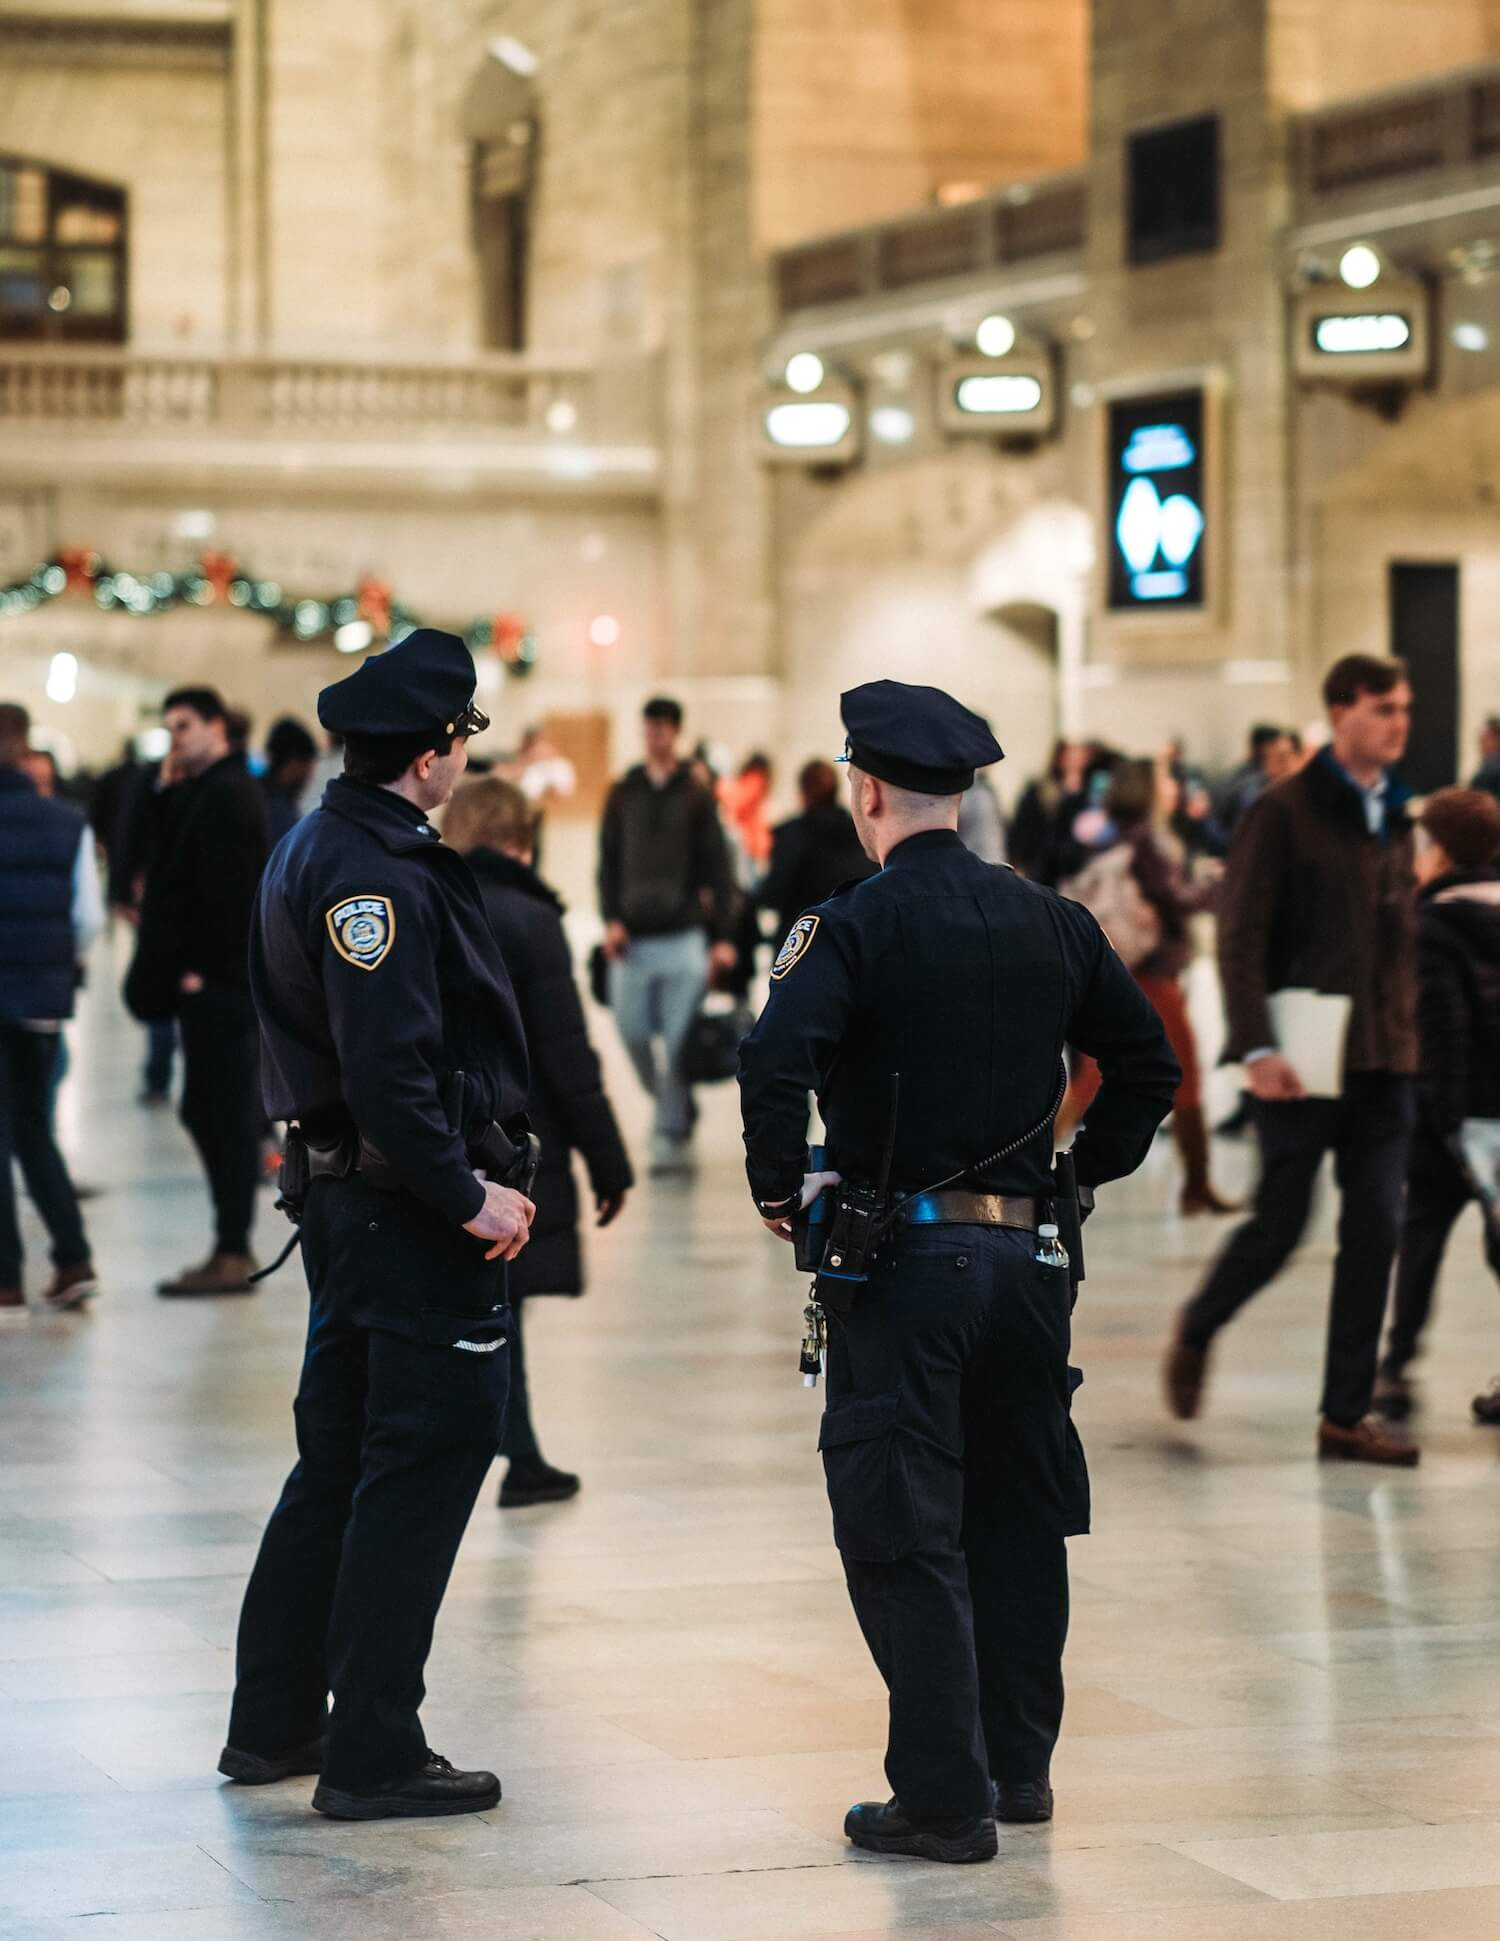 Police standing in Grand Central Station